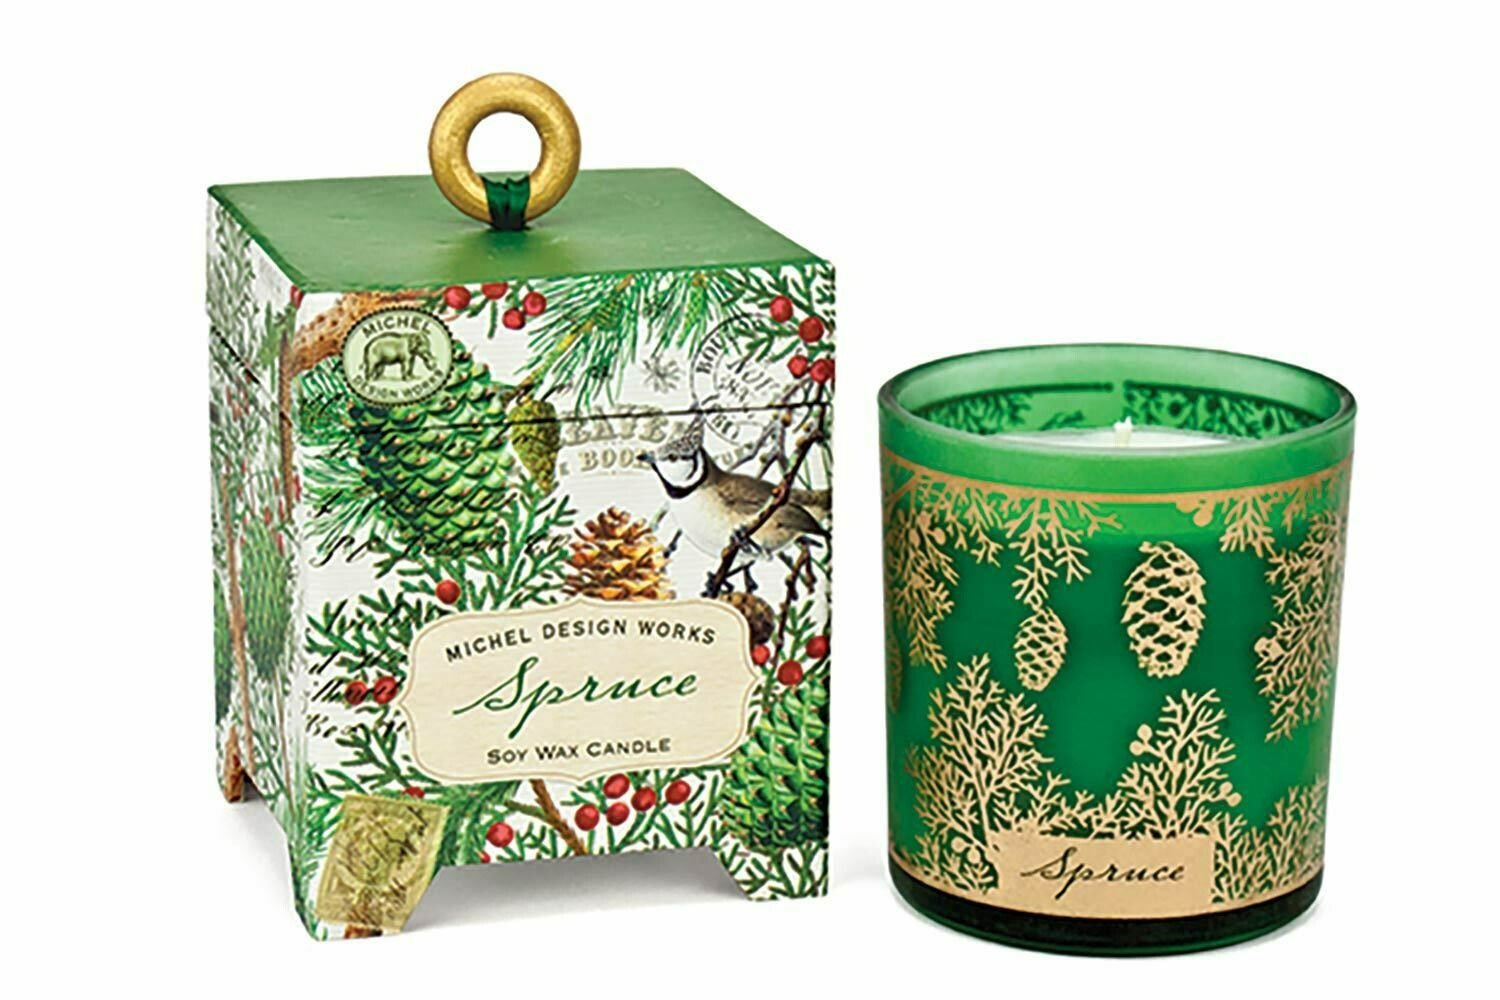 Michel Design Works Spruce Soy Candle 6.5 oz